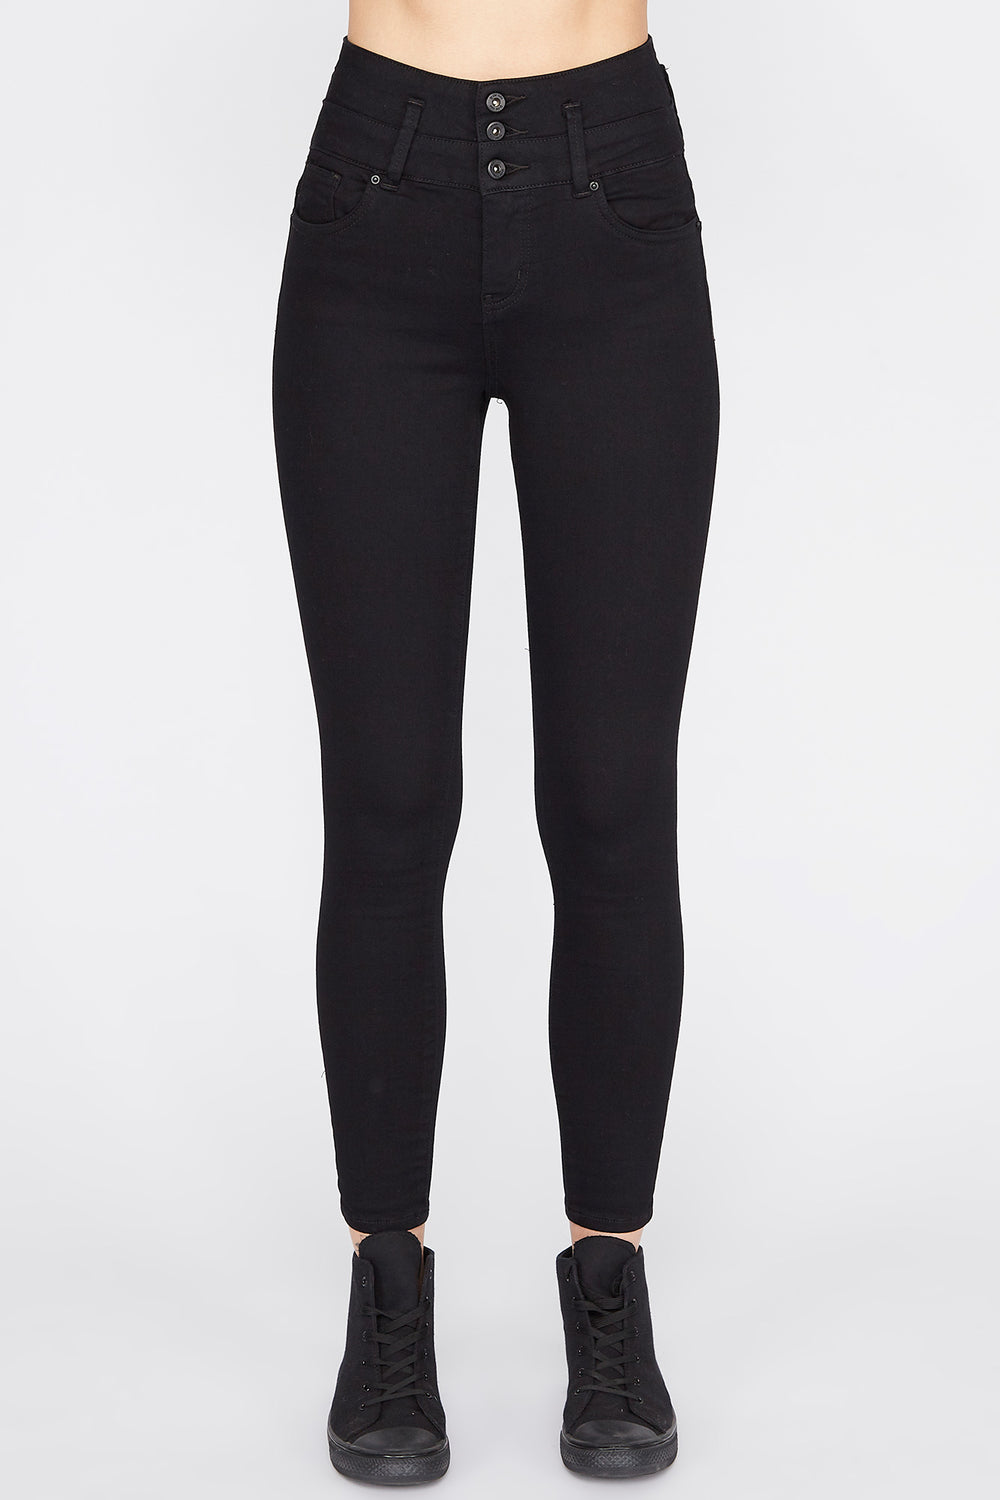 Zoo York Womens Black 3-Tier Curvy Jeans Black